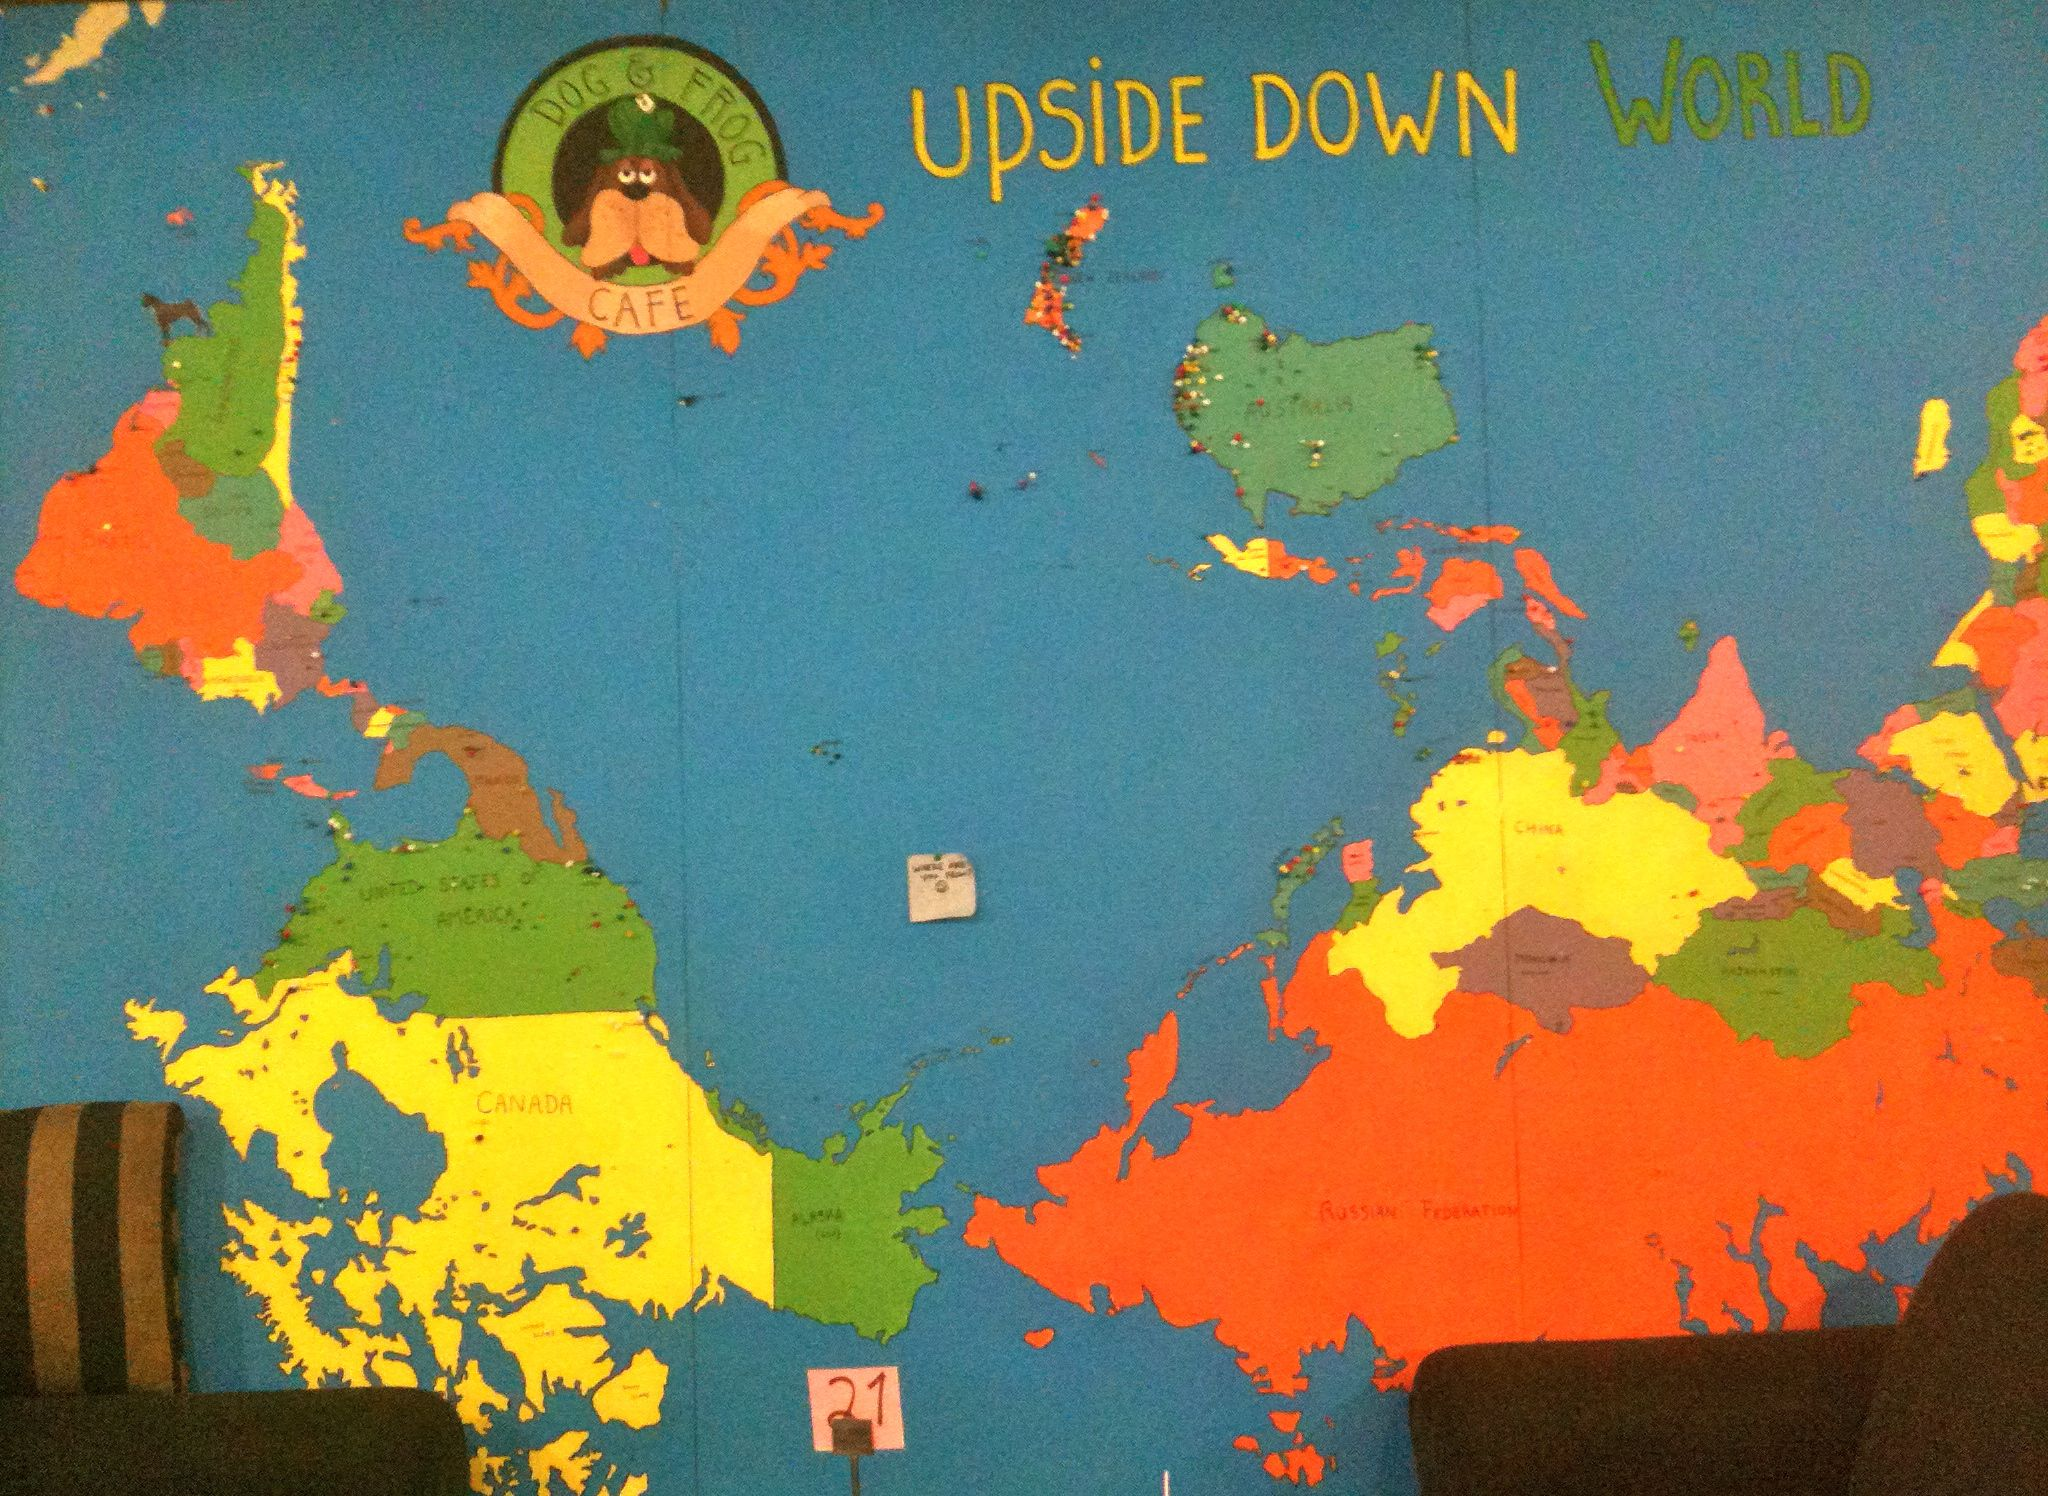 upside down world map Up North